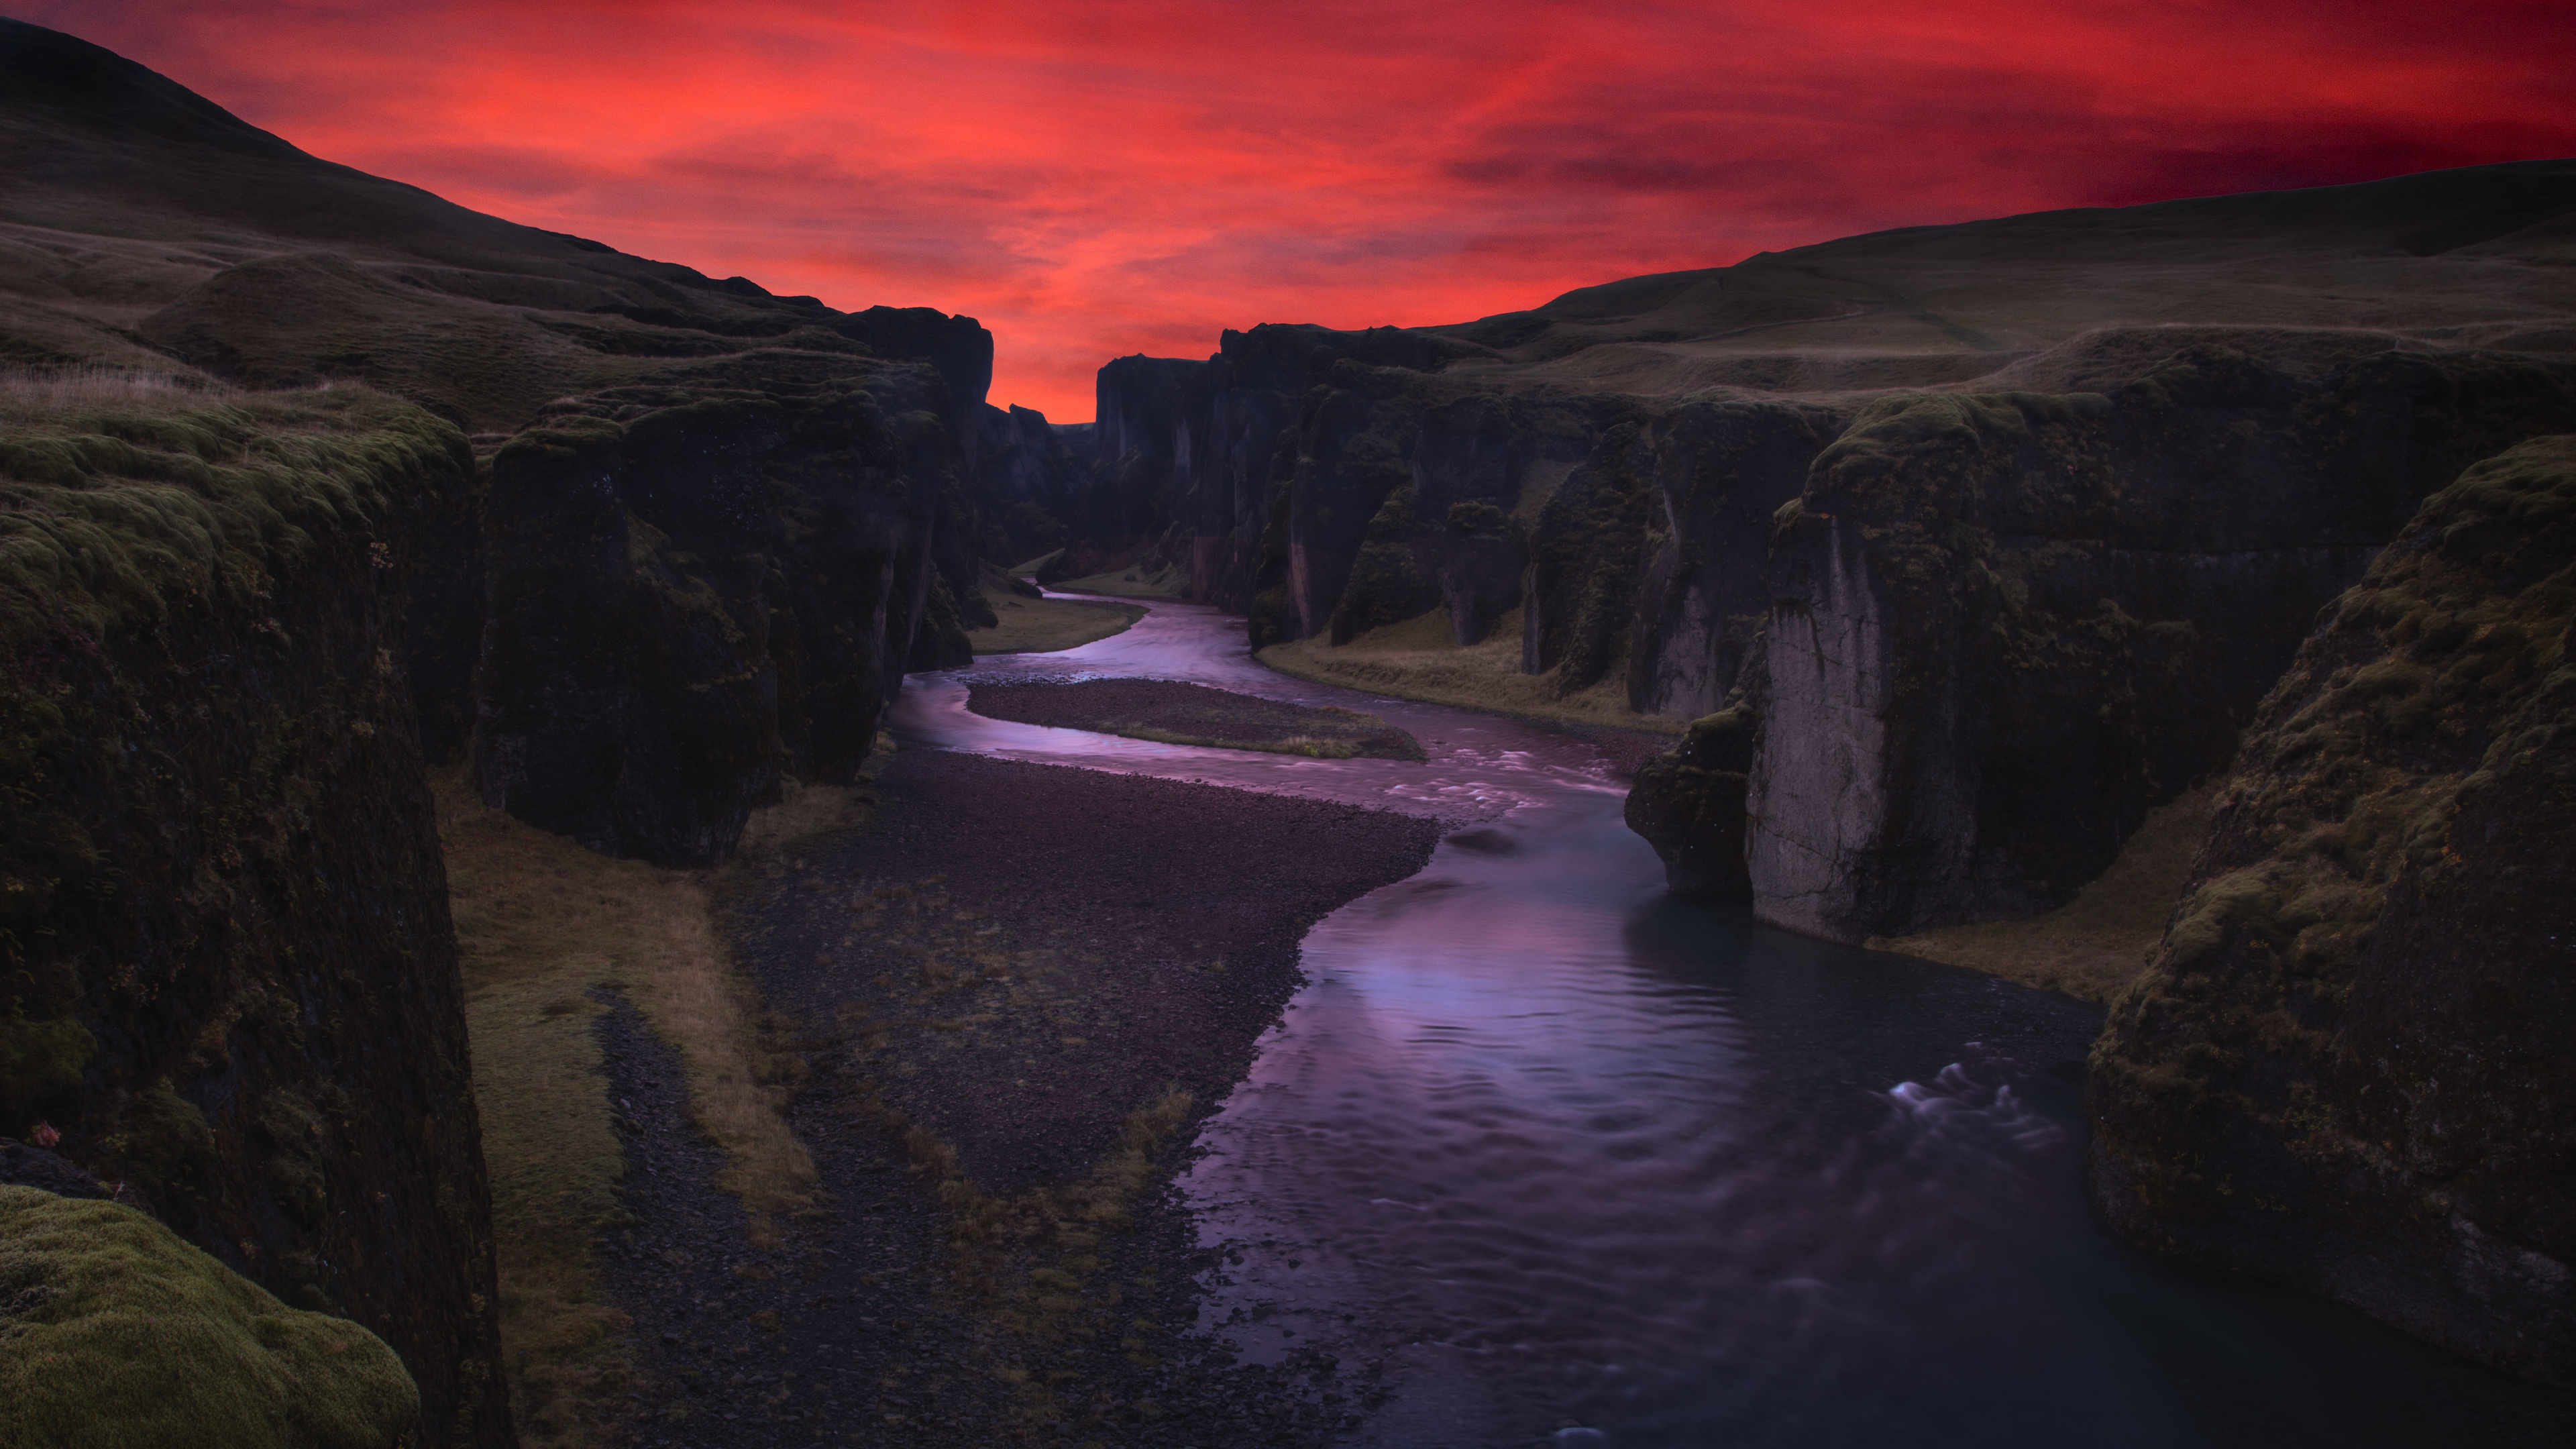 canyon river night fjadrargljufur iceland 4k 1541116072 - canyon, river, night, fjadrargljufur, iceland 4k - River, Night, Canyon